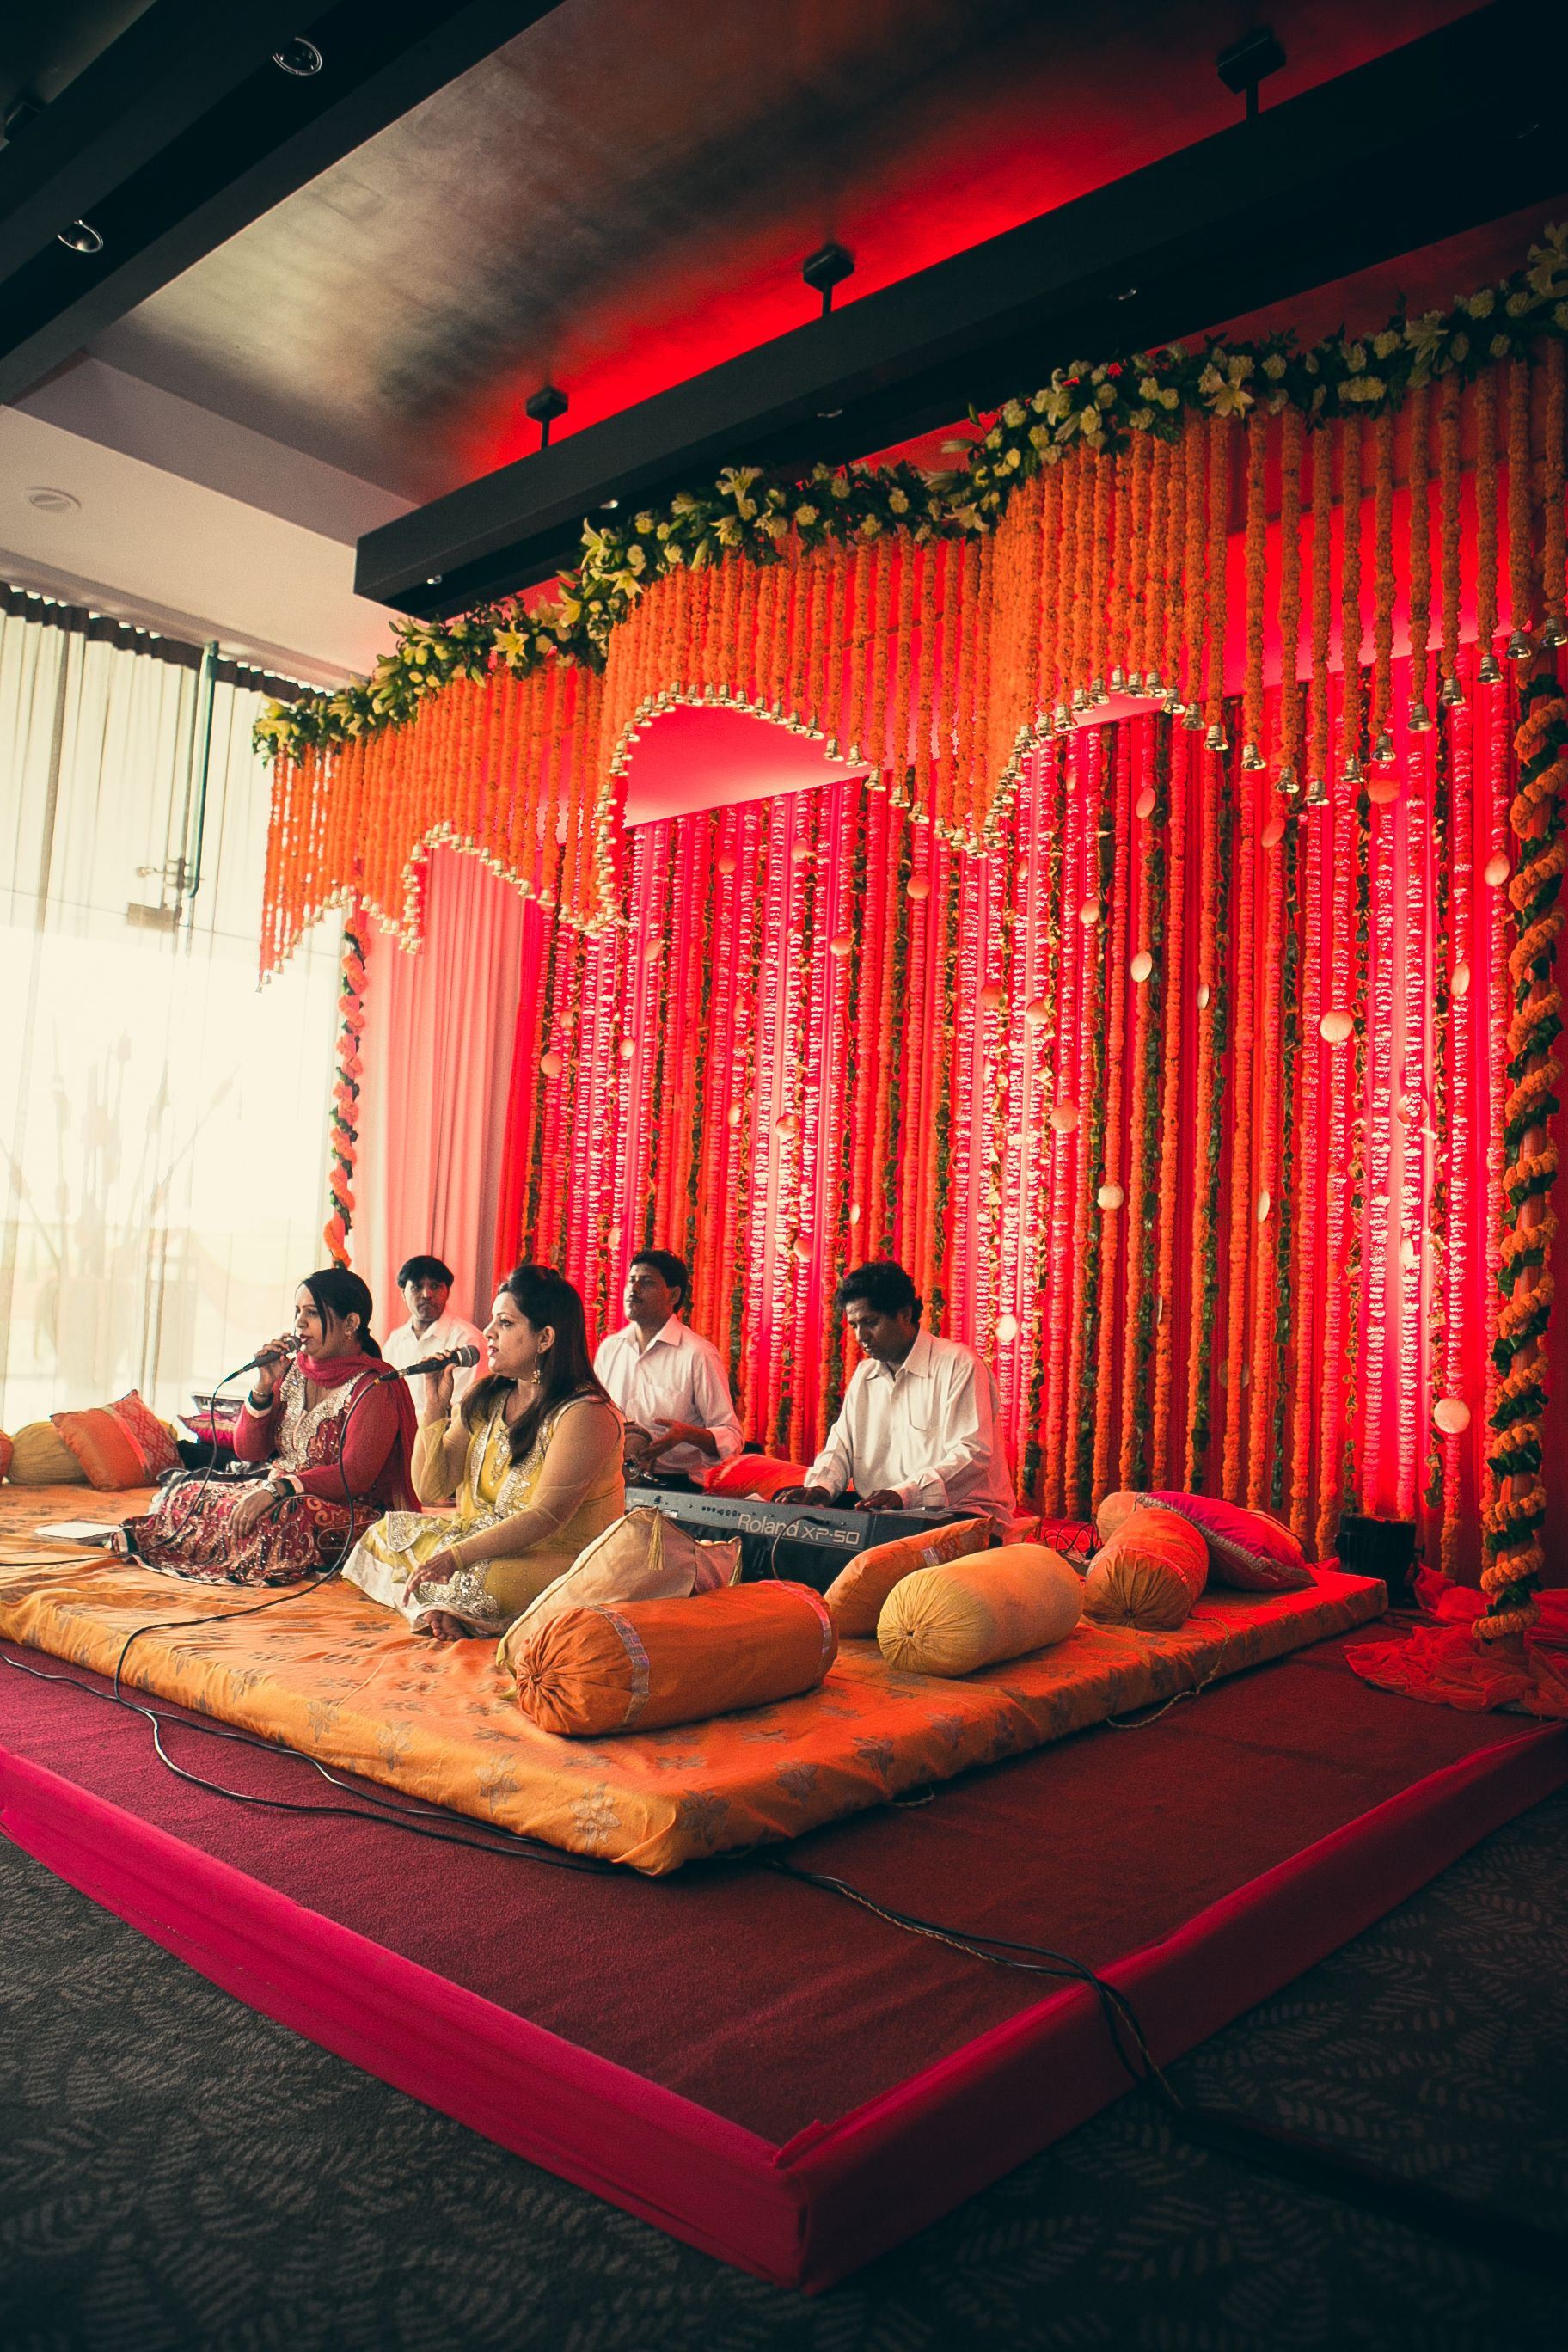 Wedding stage simple decoration images  Photozaapki wedding decor music inspiration  Stage ideas